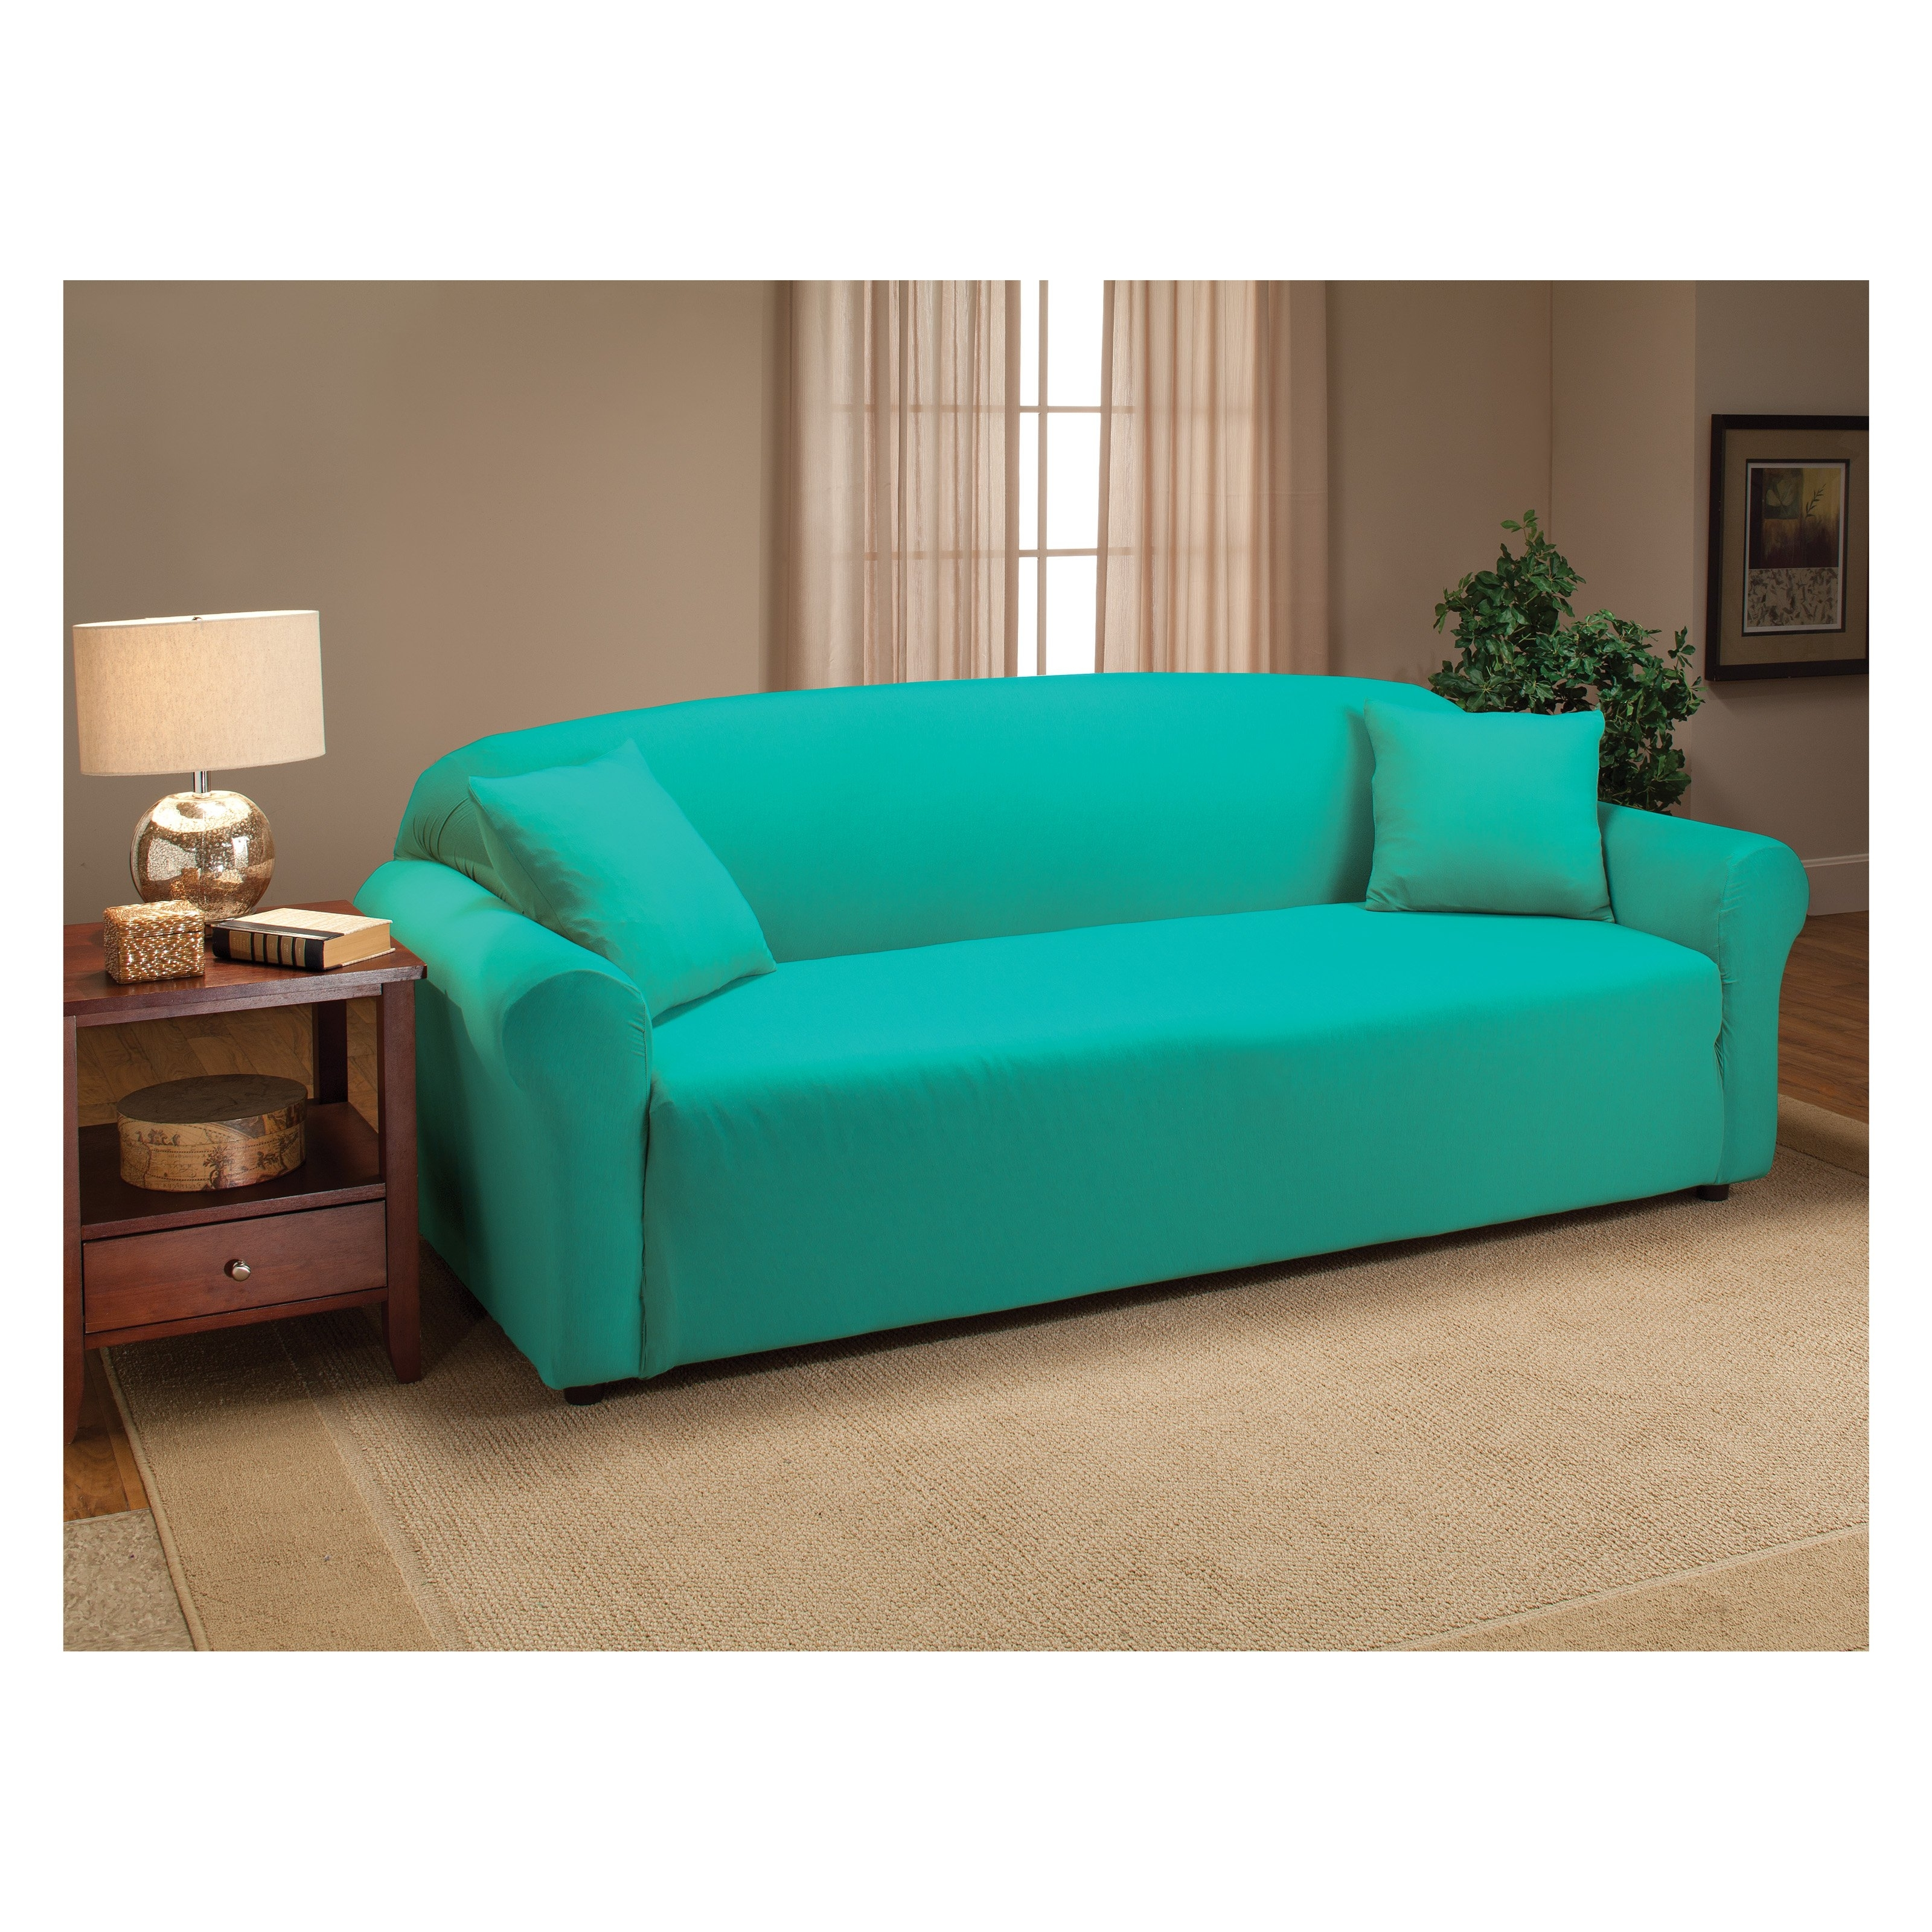 Widely Used Aqua Sofas With Madison Industries Solid Jersey Sofa Cover (View 20 of 20)